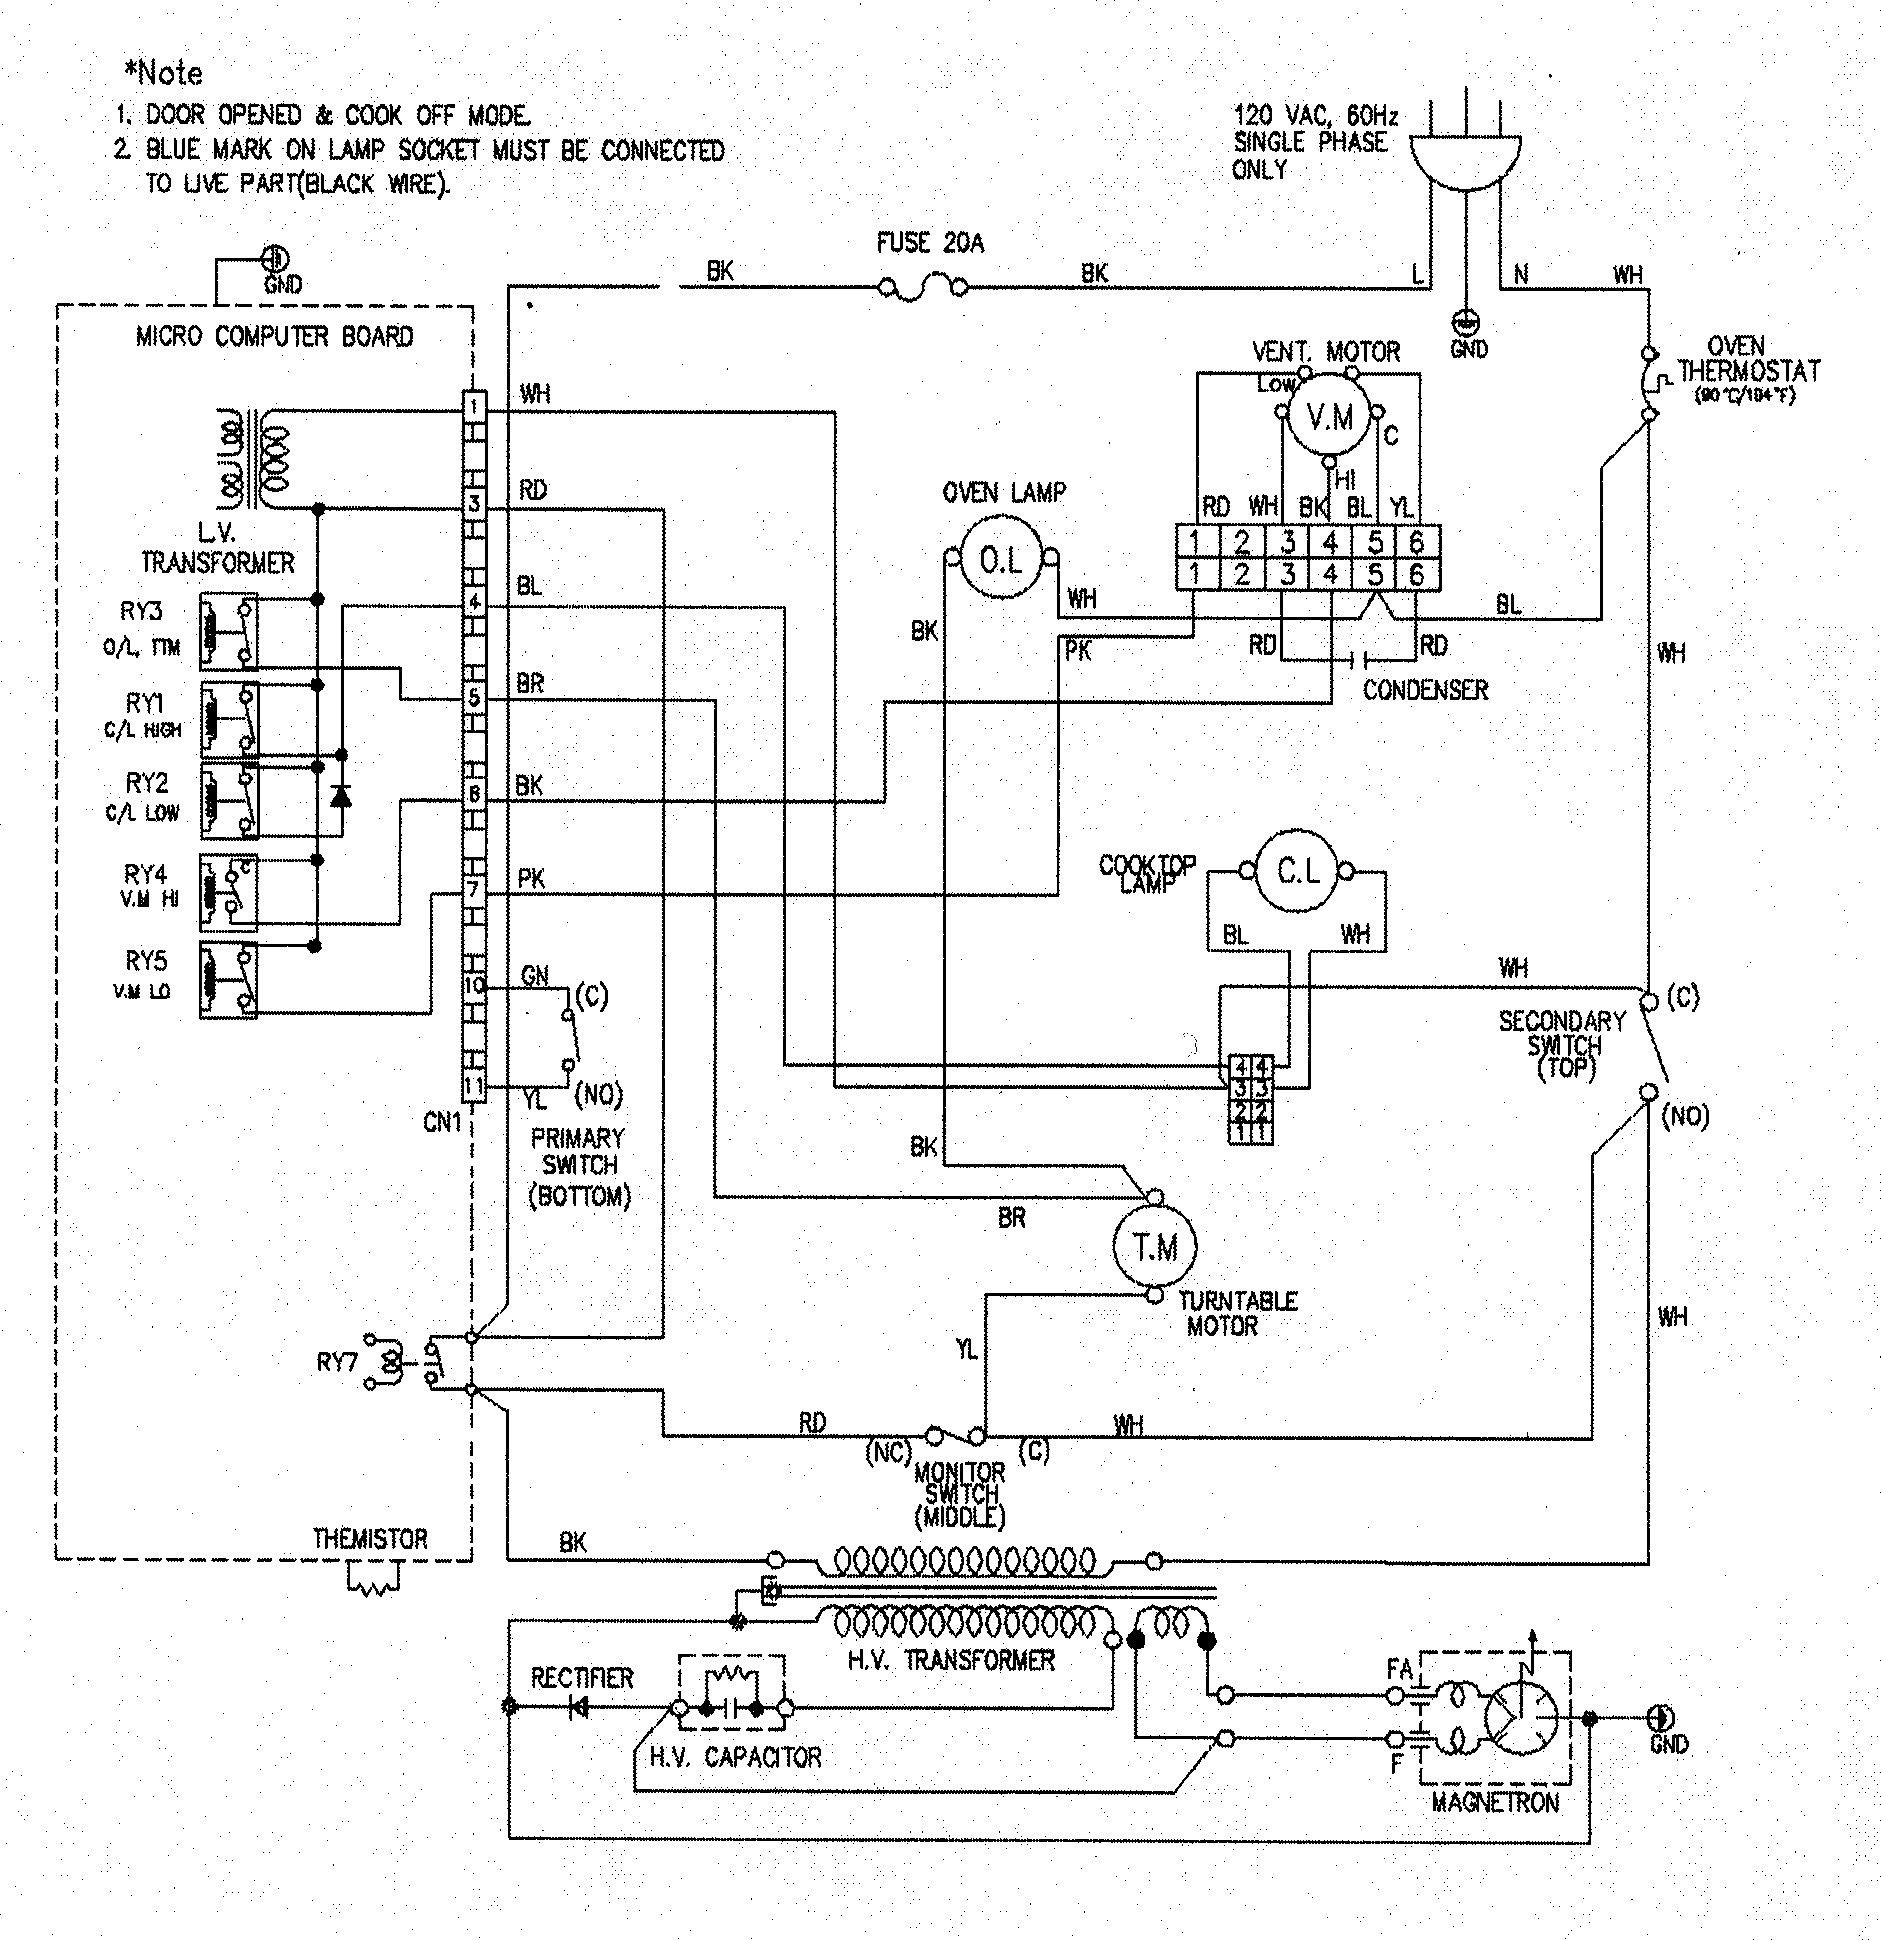 New Wiring Diagram For Ge Electric Motor Diagram Diagramsample Diagramtemplate Wiringdiagram Diagramchart Wo Thermostat Wiring House Wiring Electric Oven